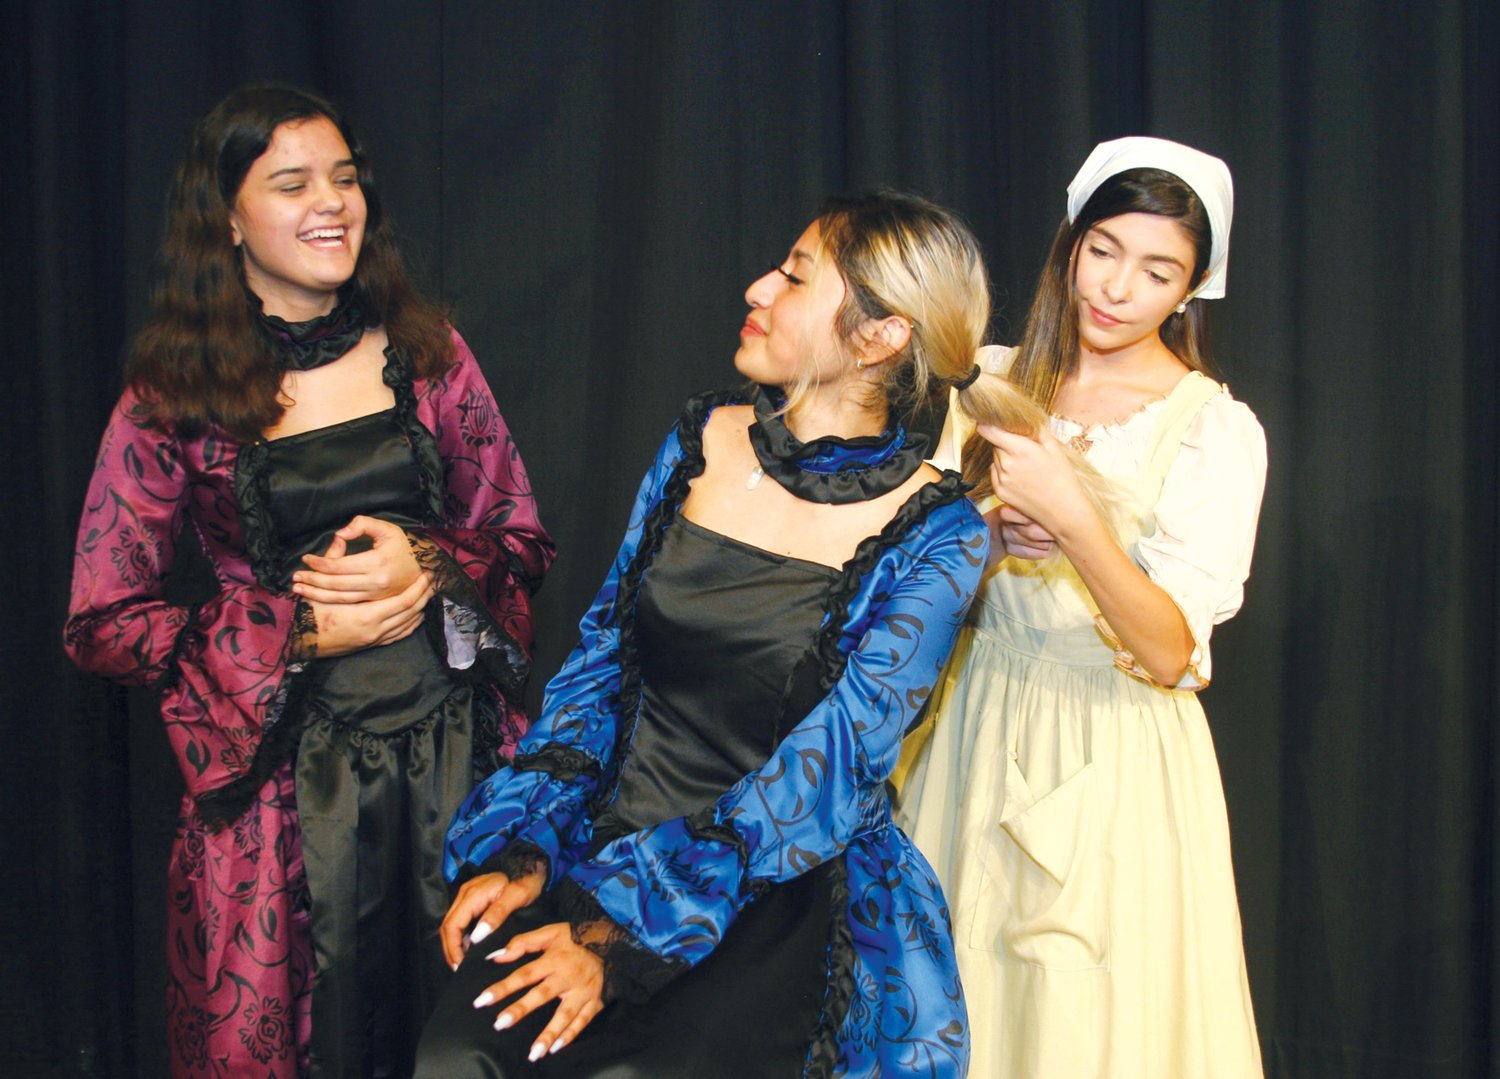 Cinderella (Kayli McIntosh at right) helps her stepsisters Florinda (Shelia Hernandez, seated) and Lucinda (Alana May) get ready for the King's Festival.